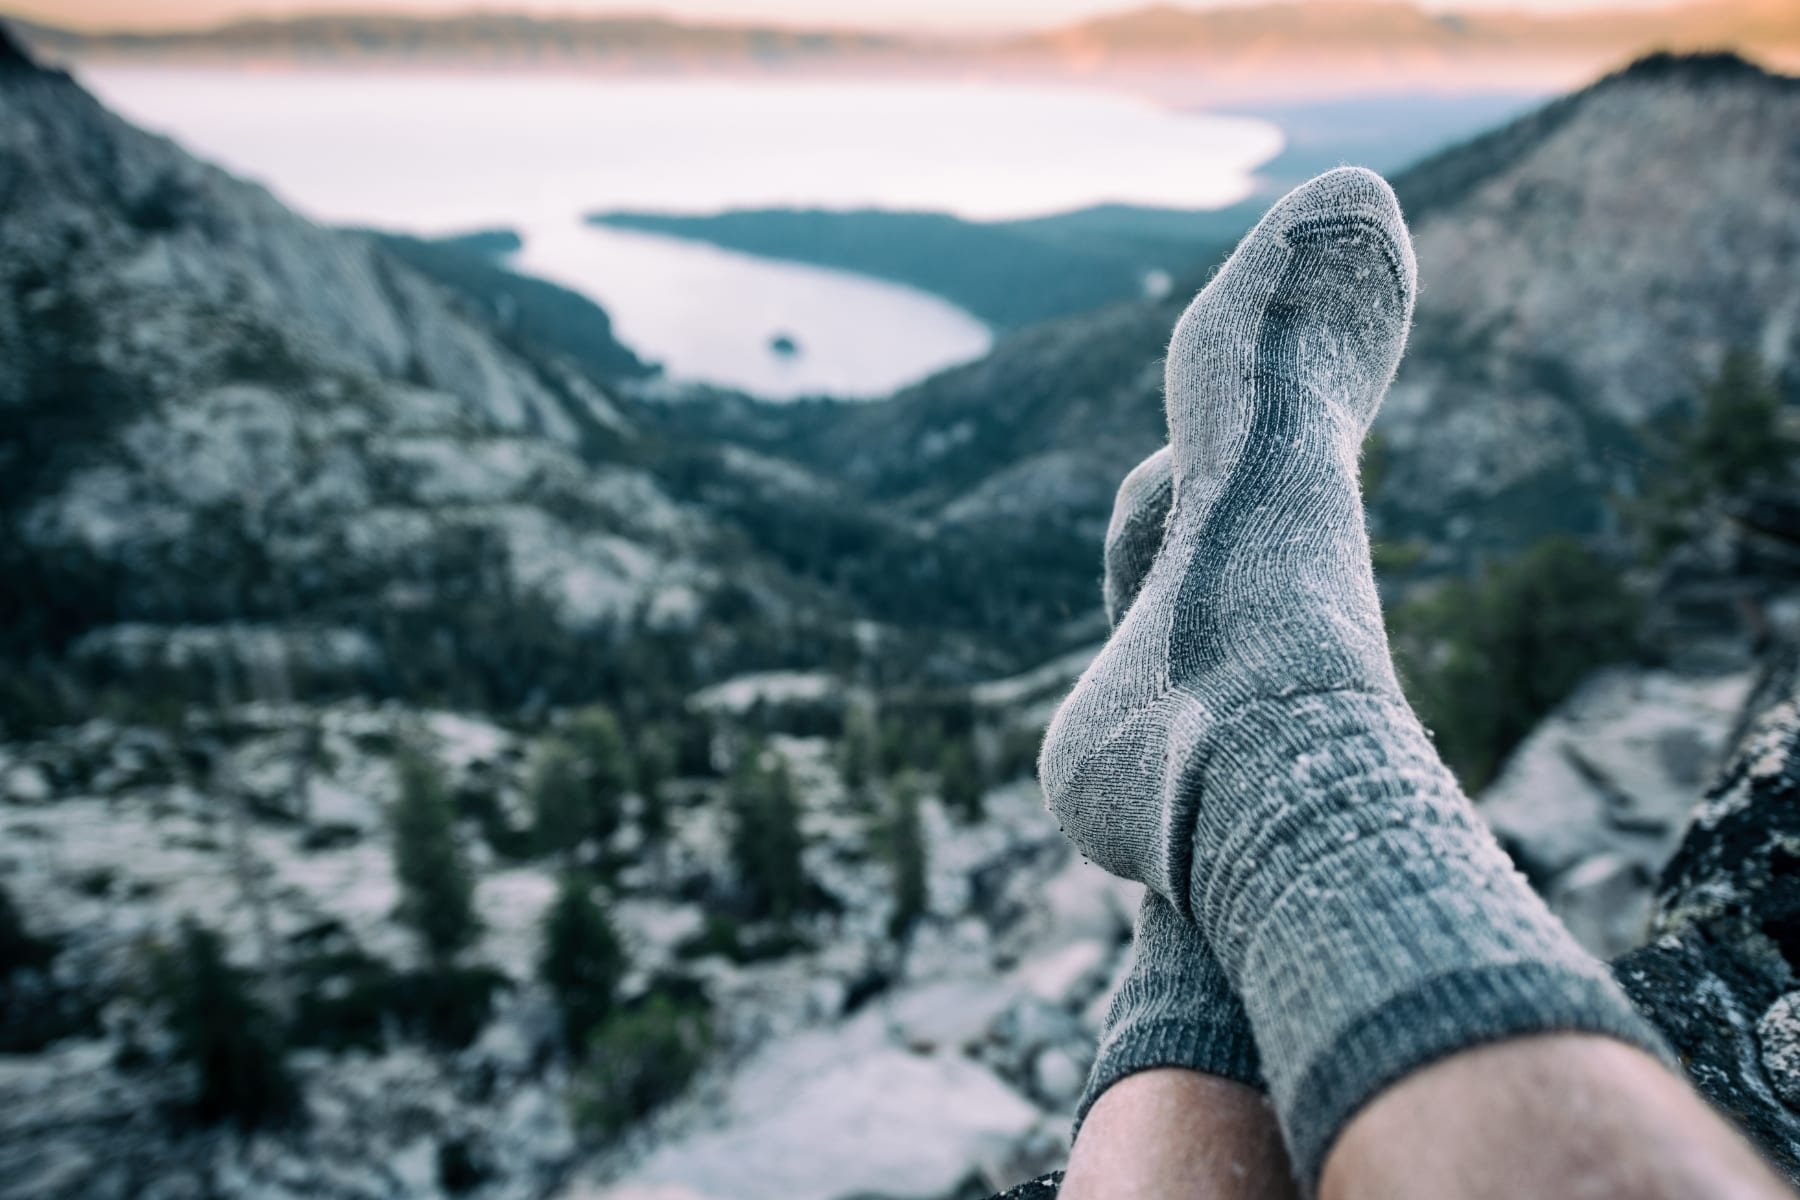 A person wearing socks with a view of mountains and a lake in the background.